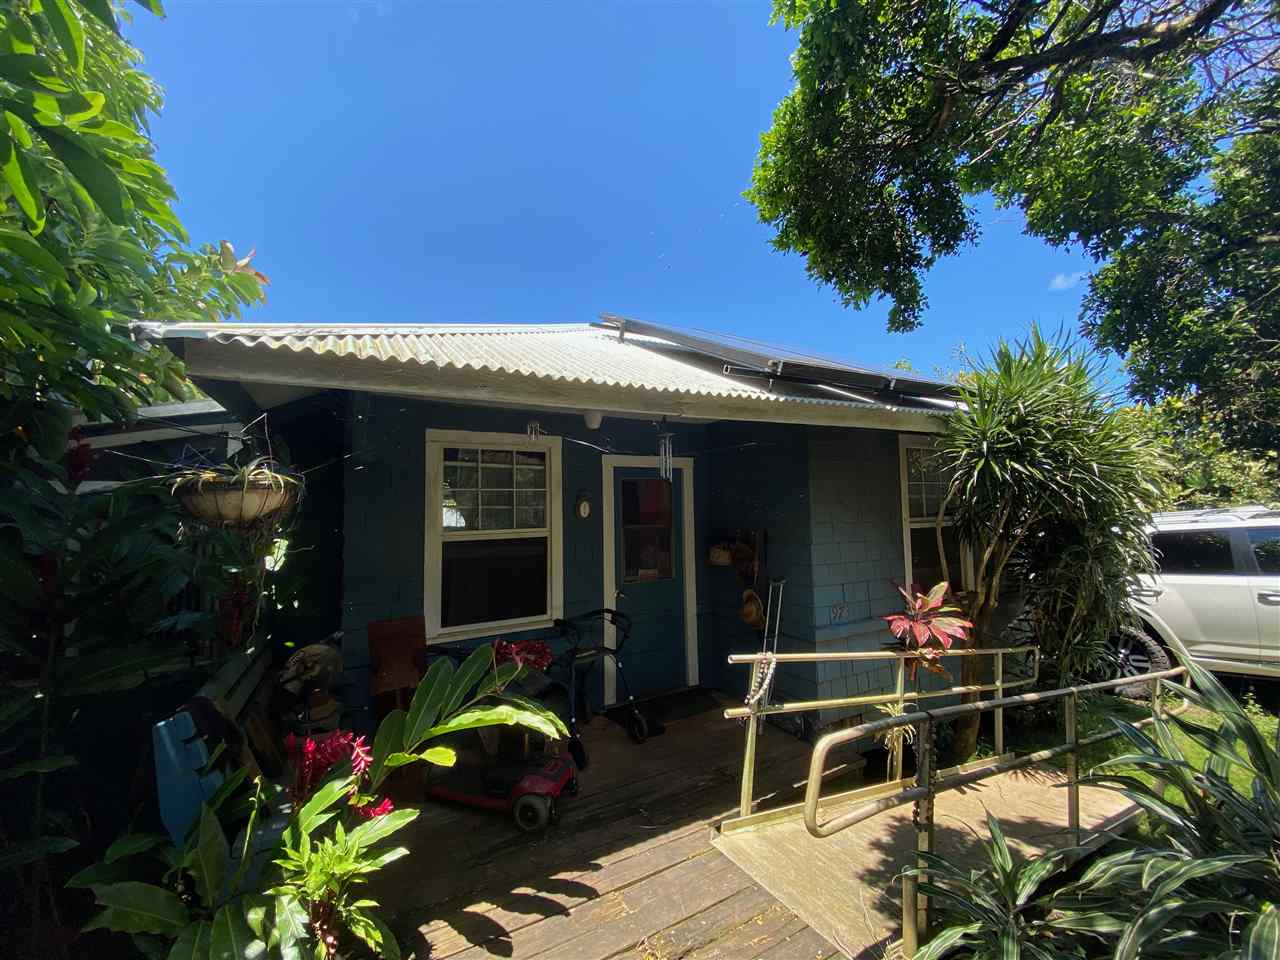 973 Iulani St in Rice Camp